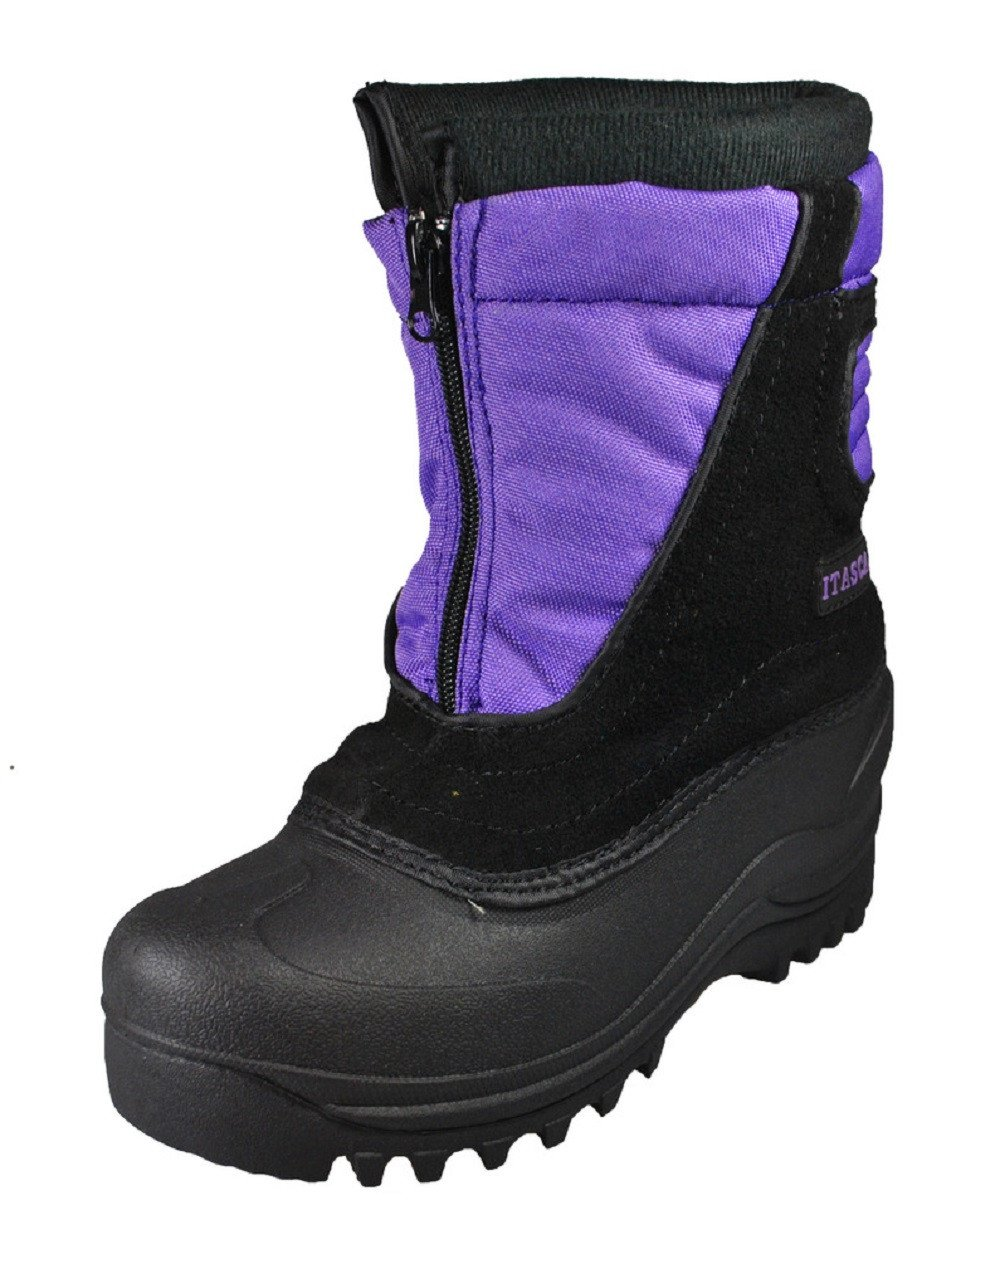 Itasca Girls cerebus Mid-Calf Pull On Snow Boots, Purple, Size 7